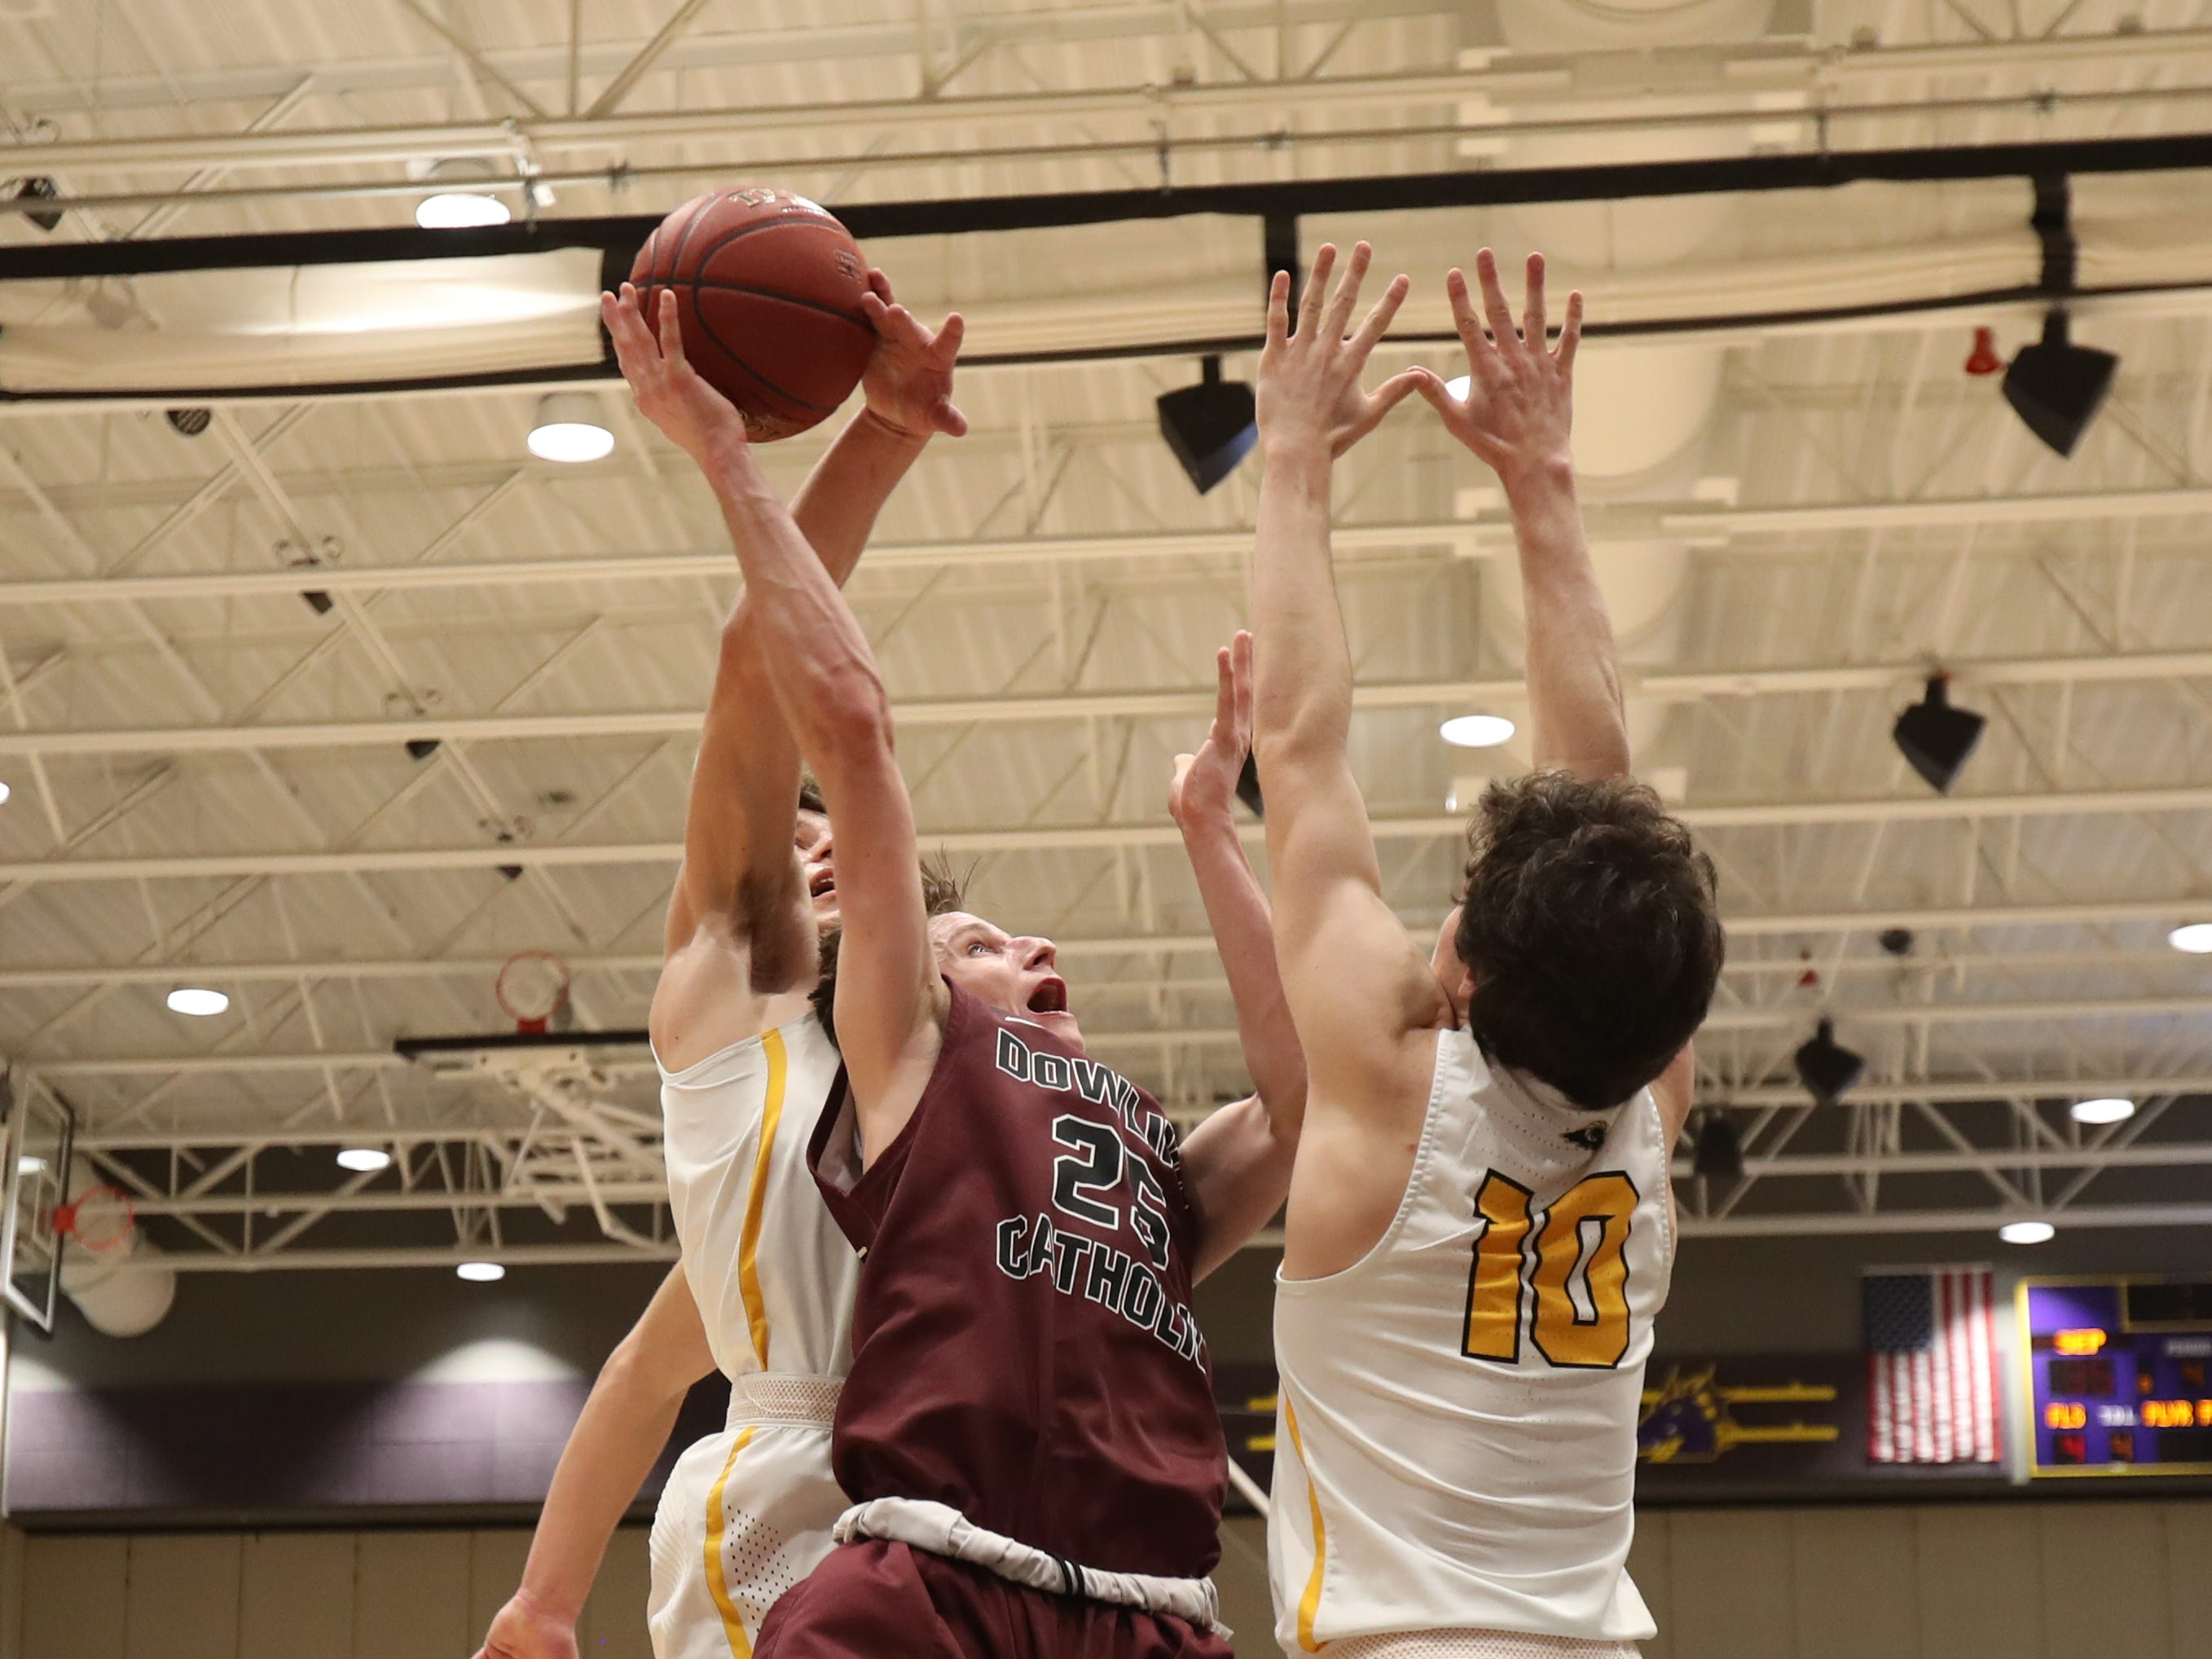 Southeast Polk's Dominic Caggiano (13) blocks the shot of Dowling Catholic's Matt Stilwill (25) during their game at Johnston High School in Johnston, Iowa, on Tuesday, Feb. 26, 2019. Dowling won the game 44-40 to advance to state.